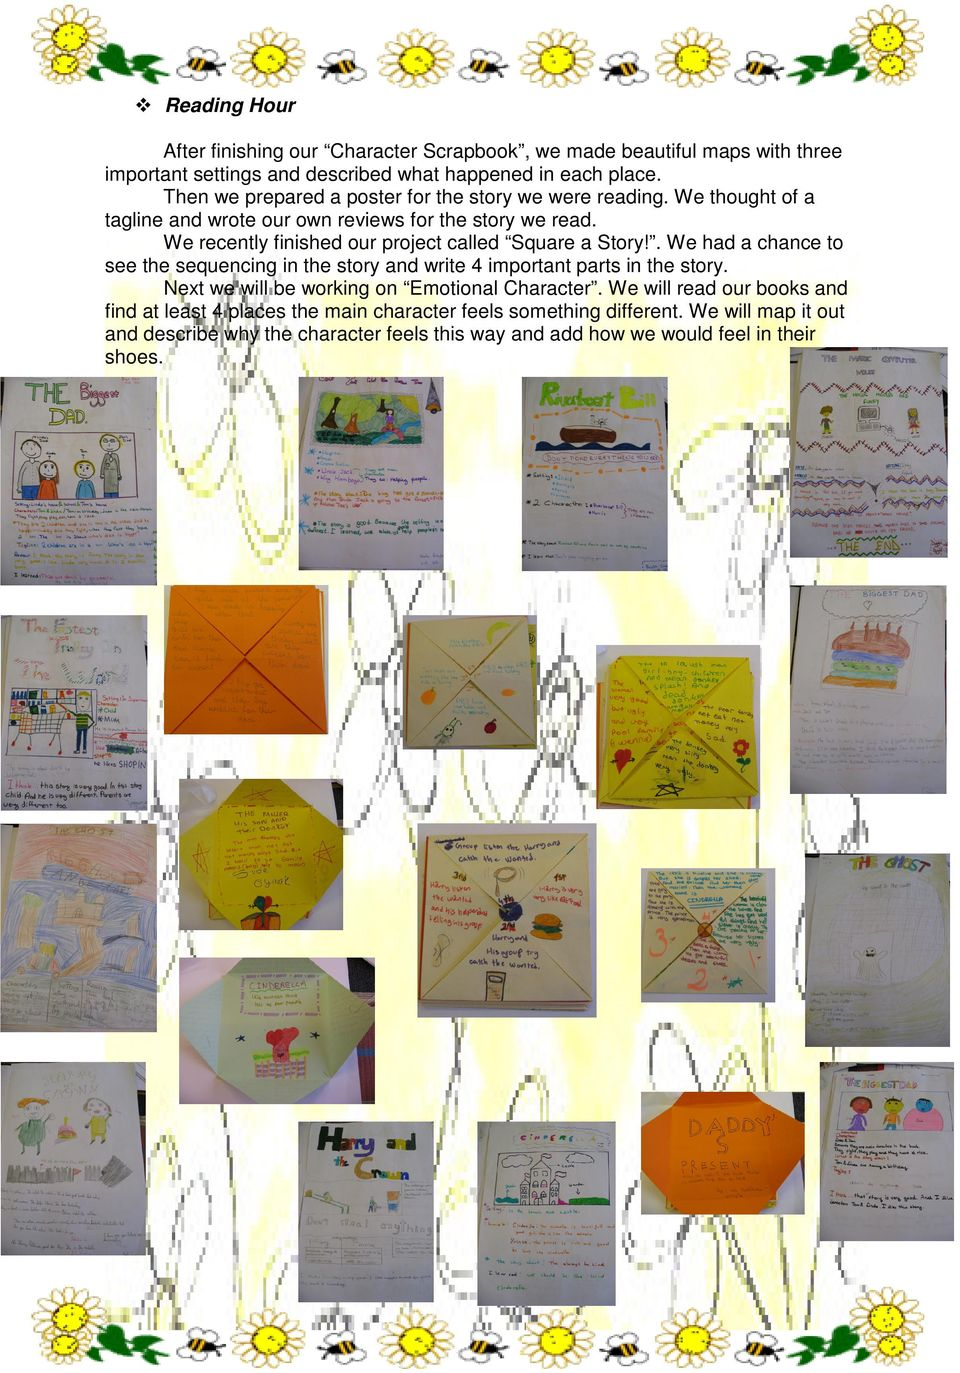 We recently finished our project called Square a Story!. We had a chance to see the sequencing in the story and write 4 important parts in the story.